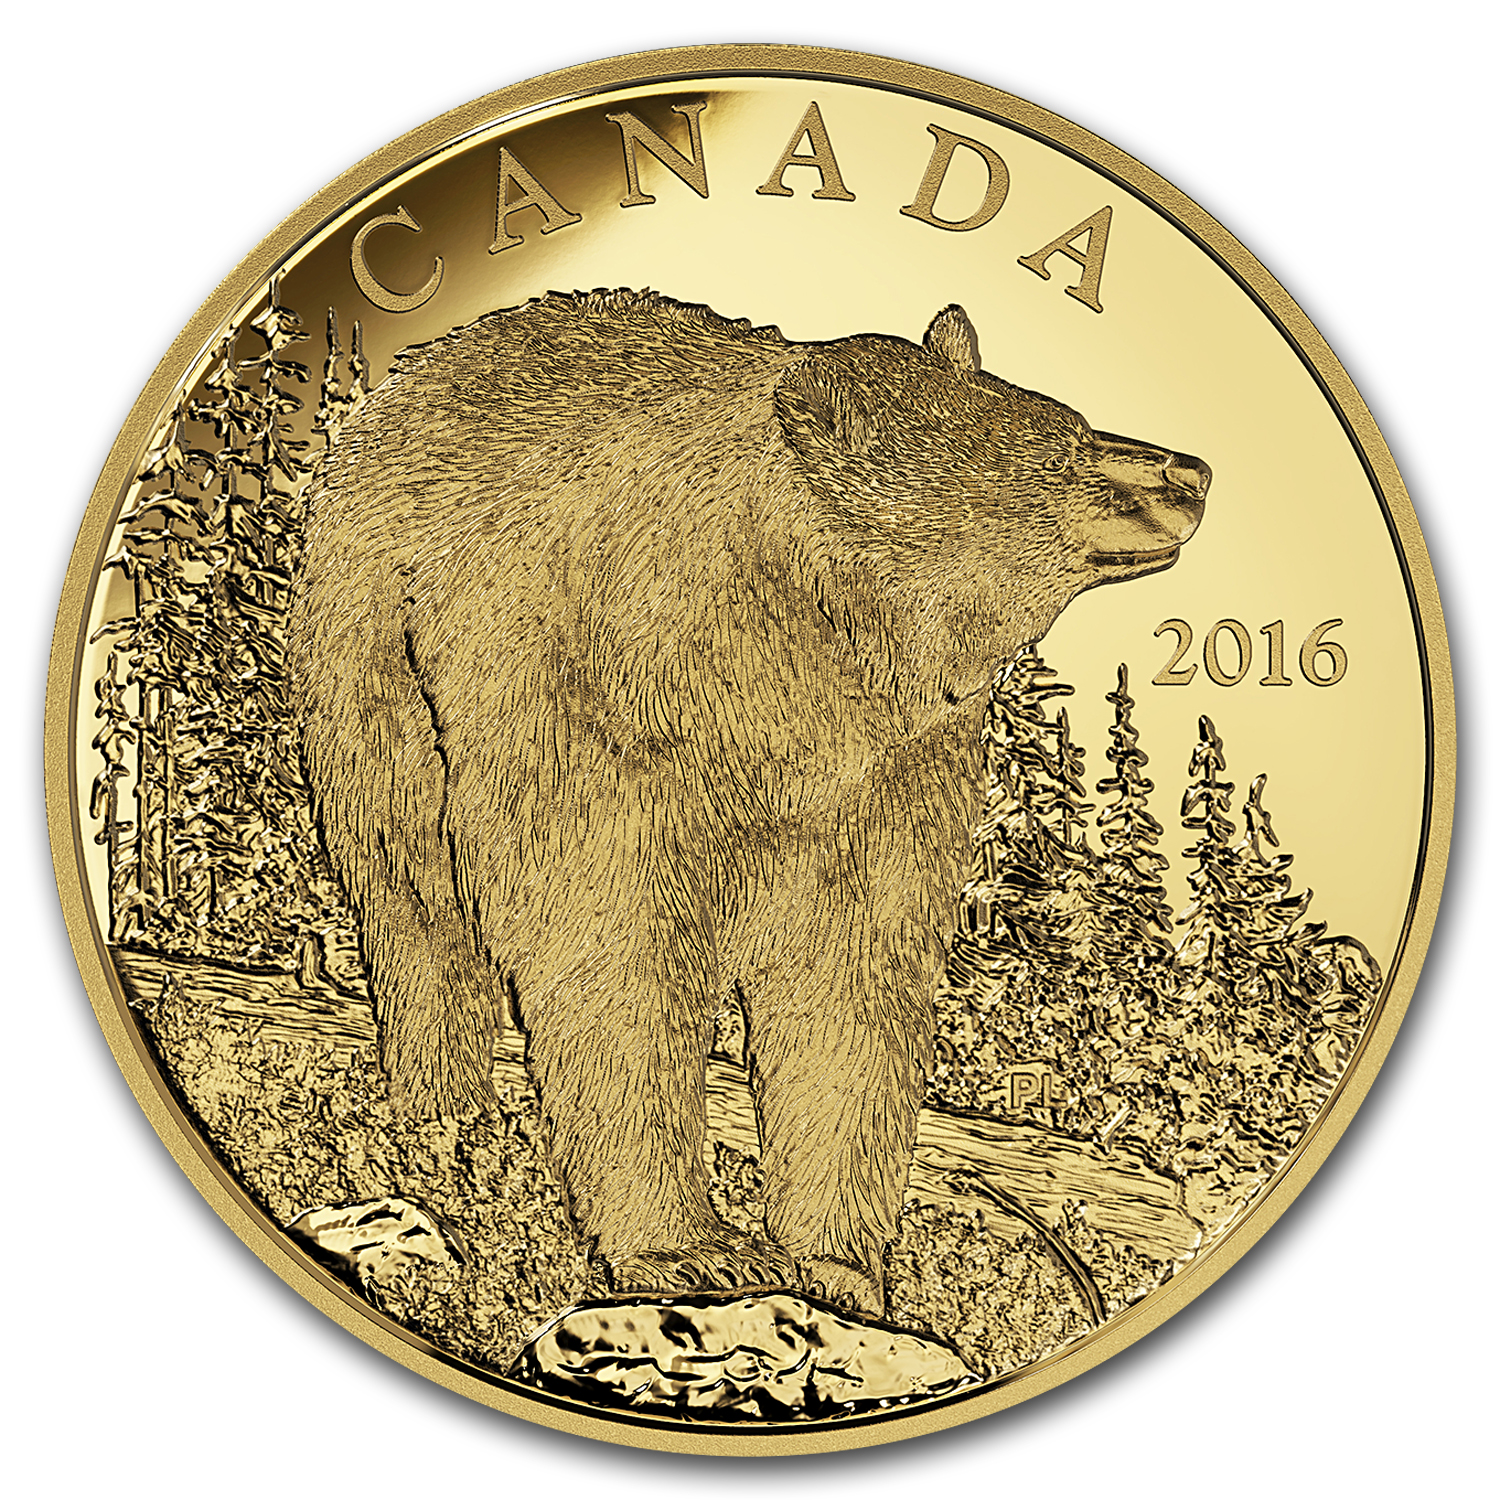 2016 Canada 1 oz Proof Gold $350 Bold Black Bear